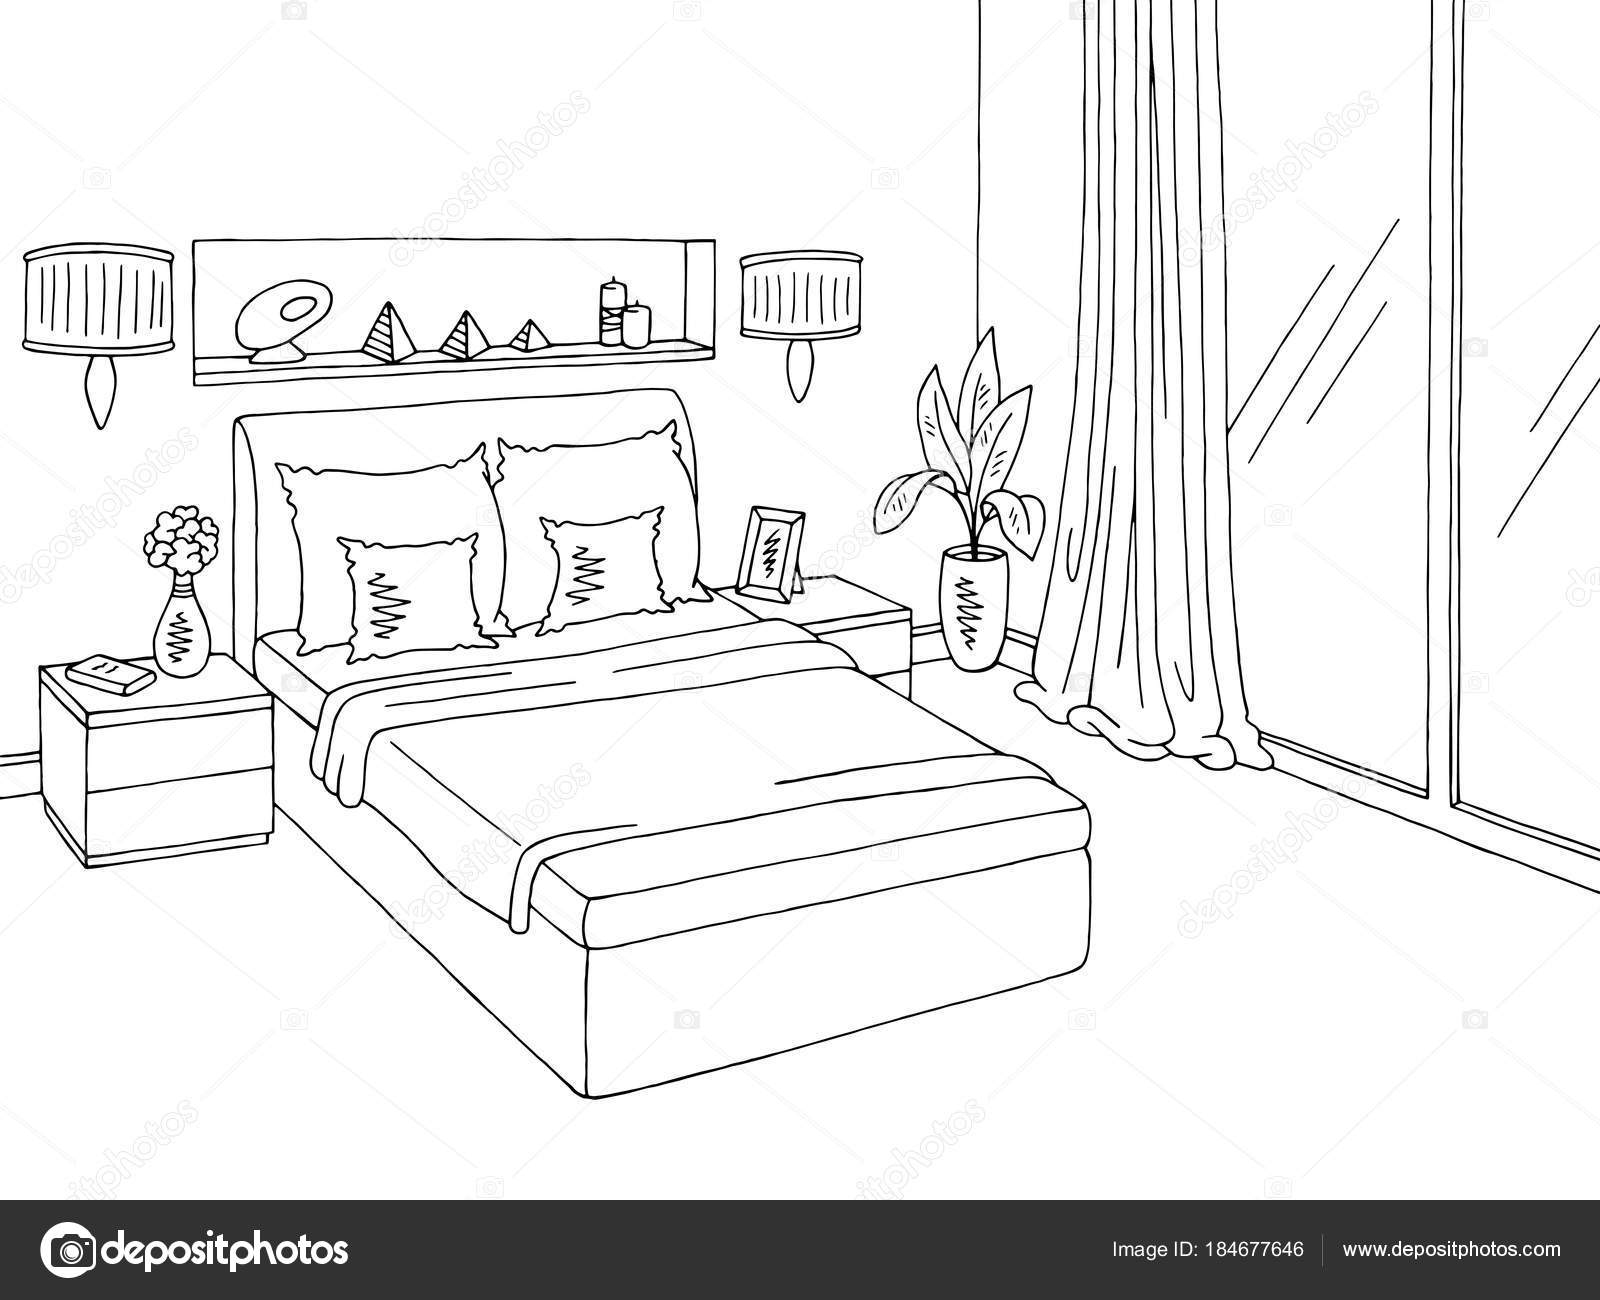 Bedroom Graphic Black White Home Interior Sketch Illustration Vector on dark interior design, modern minimalist house design, ceiling lighting interior design, modern hotel bar and lounge interior design, black interior designers, nordic interior design, all black and white interior design,